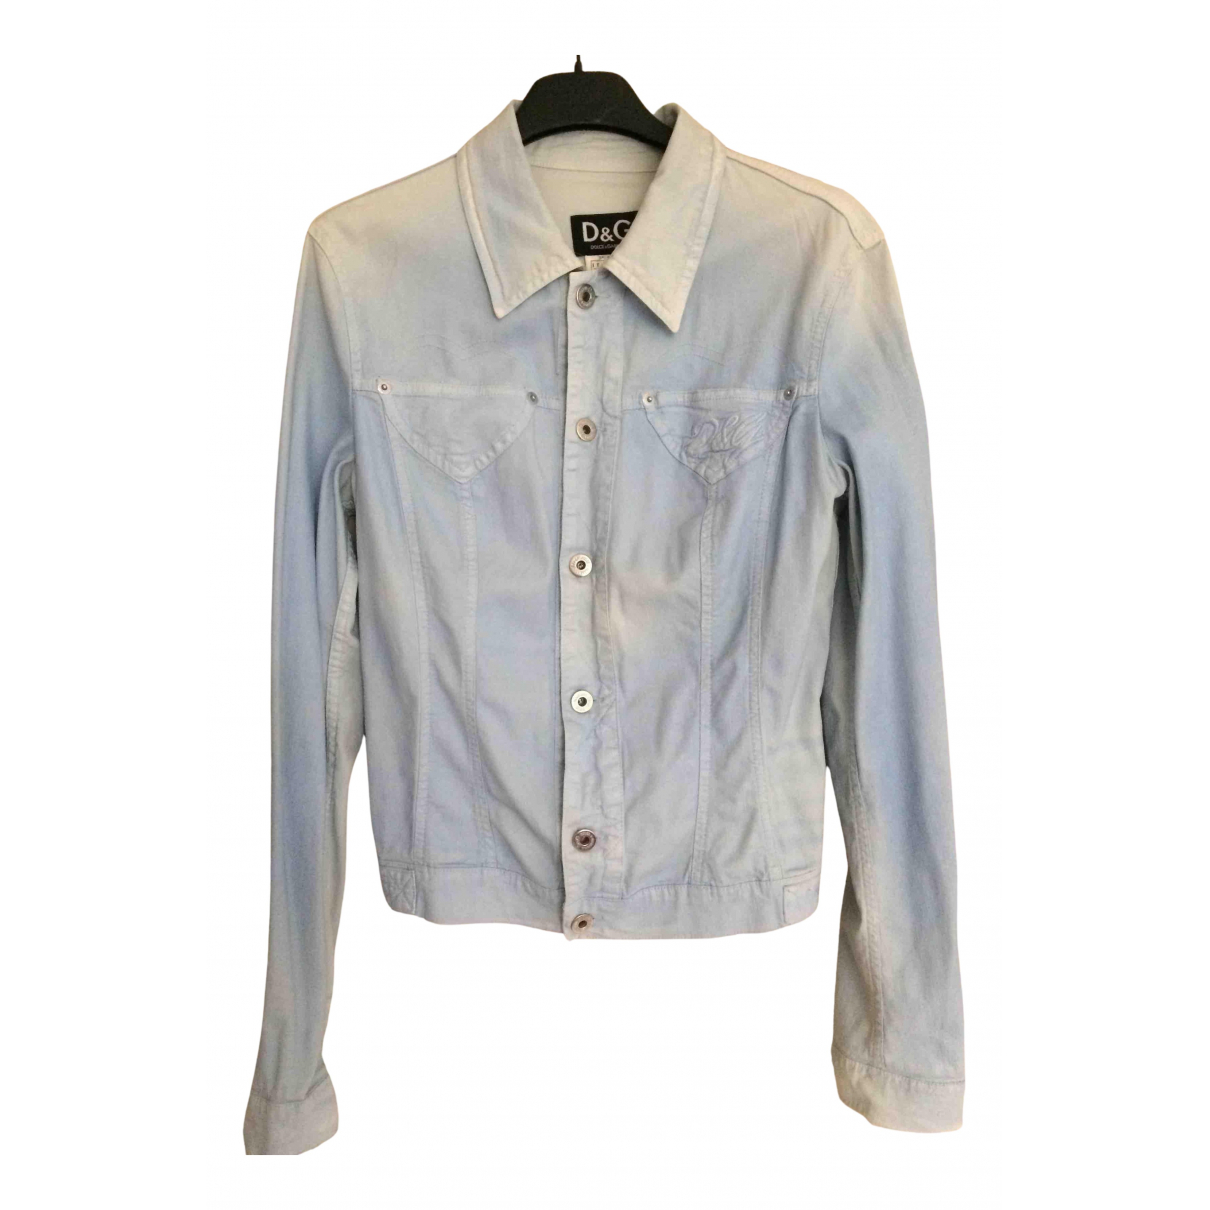 D&g N Turquoise Cotton jacket for Women 44 IT